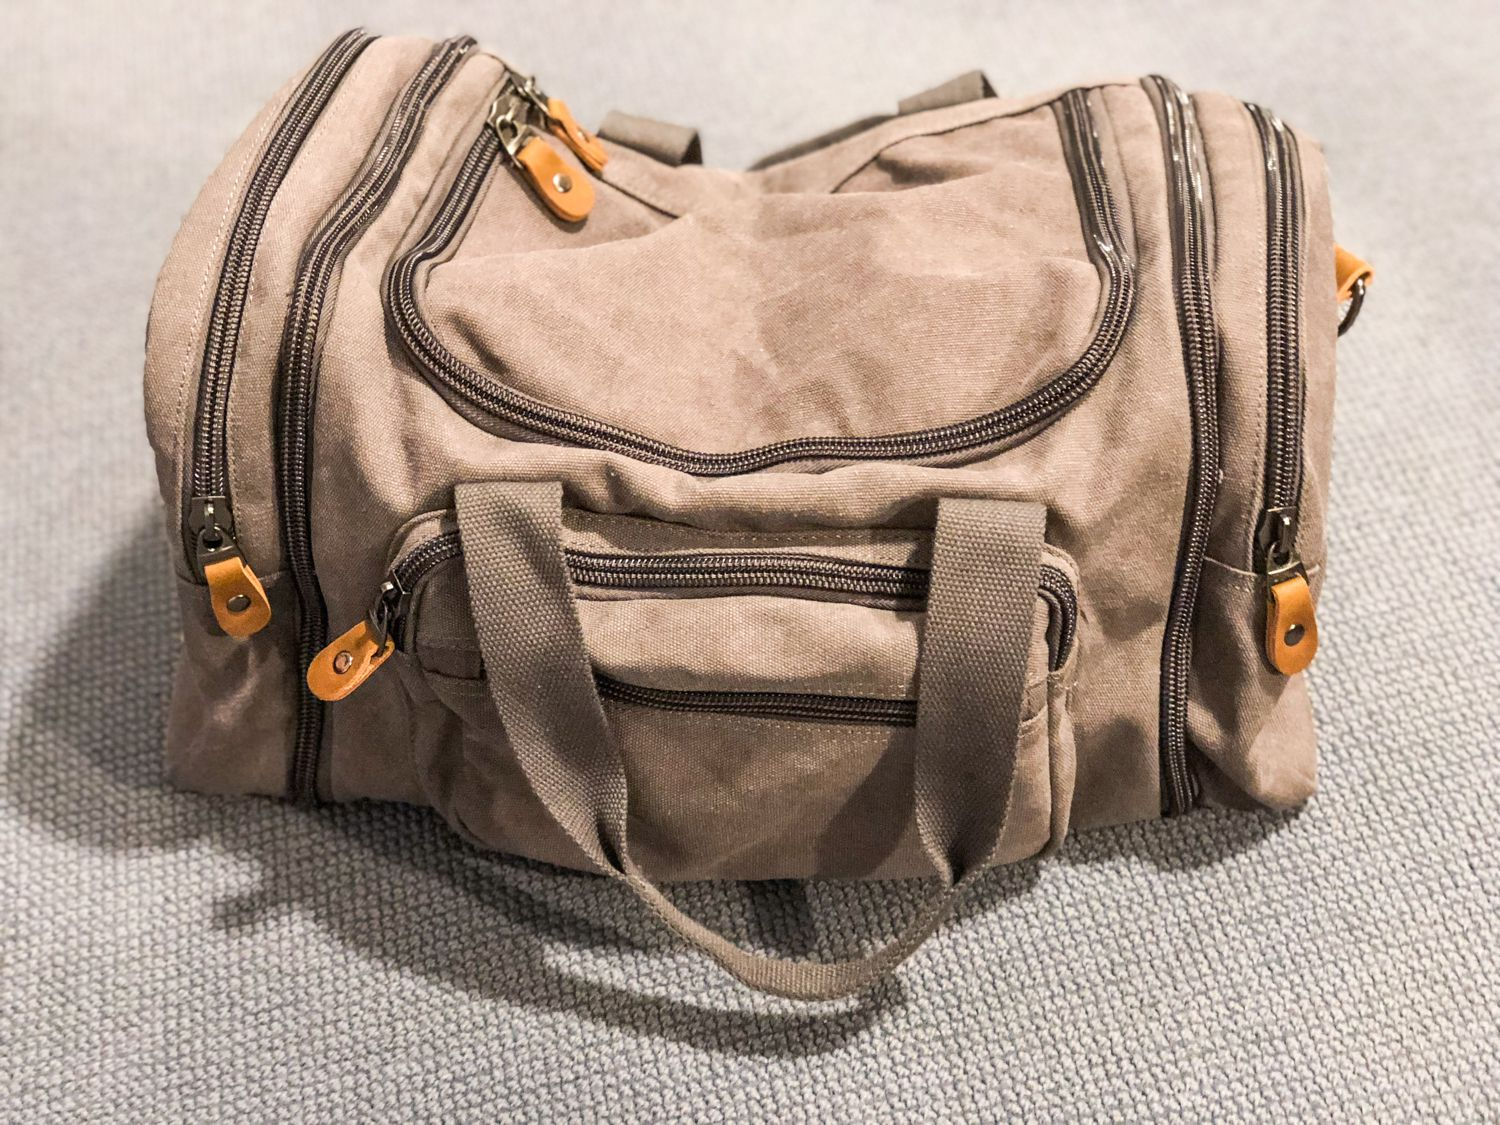 The 9 Best Duffel Bags of 2019 7ed9a4f7cce3f